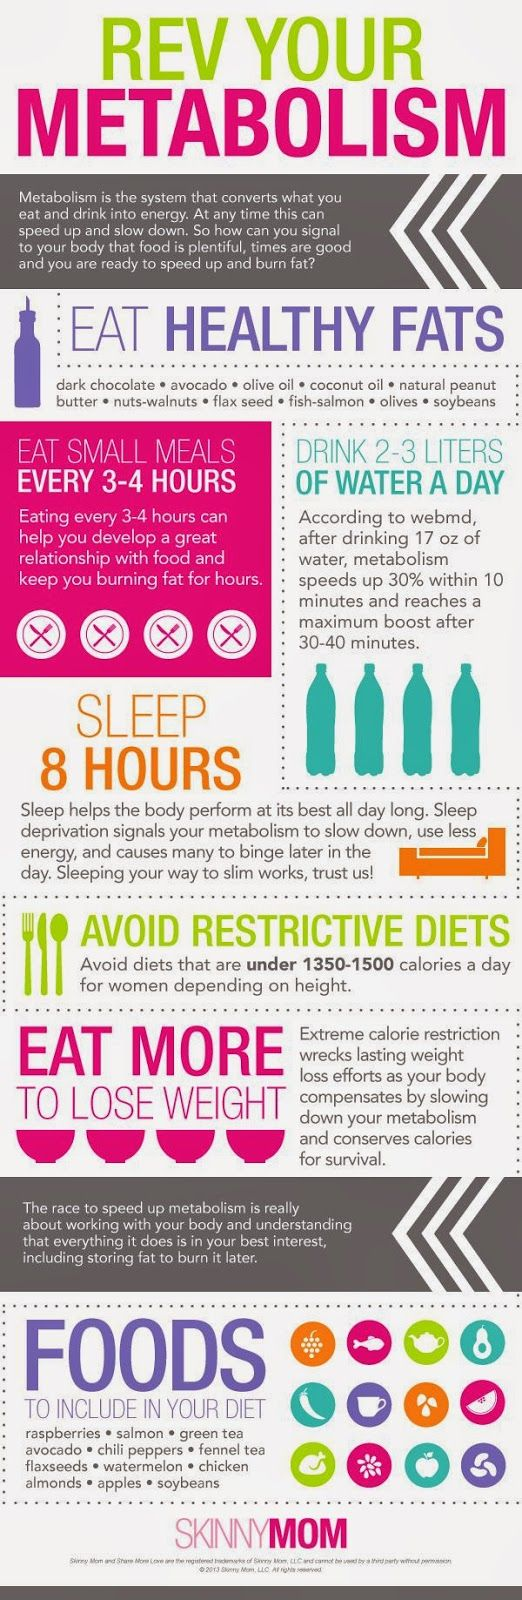 My Makeup Blog: How to Boost Your Metabolism